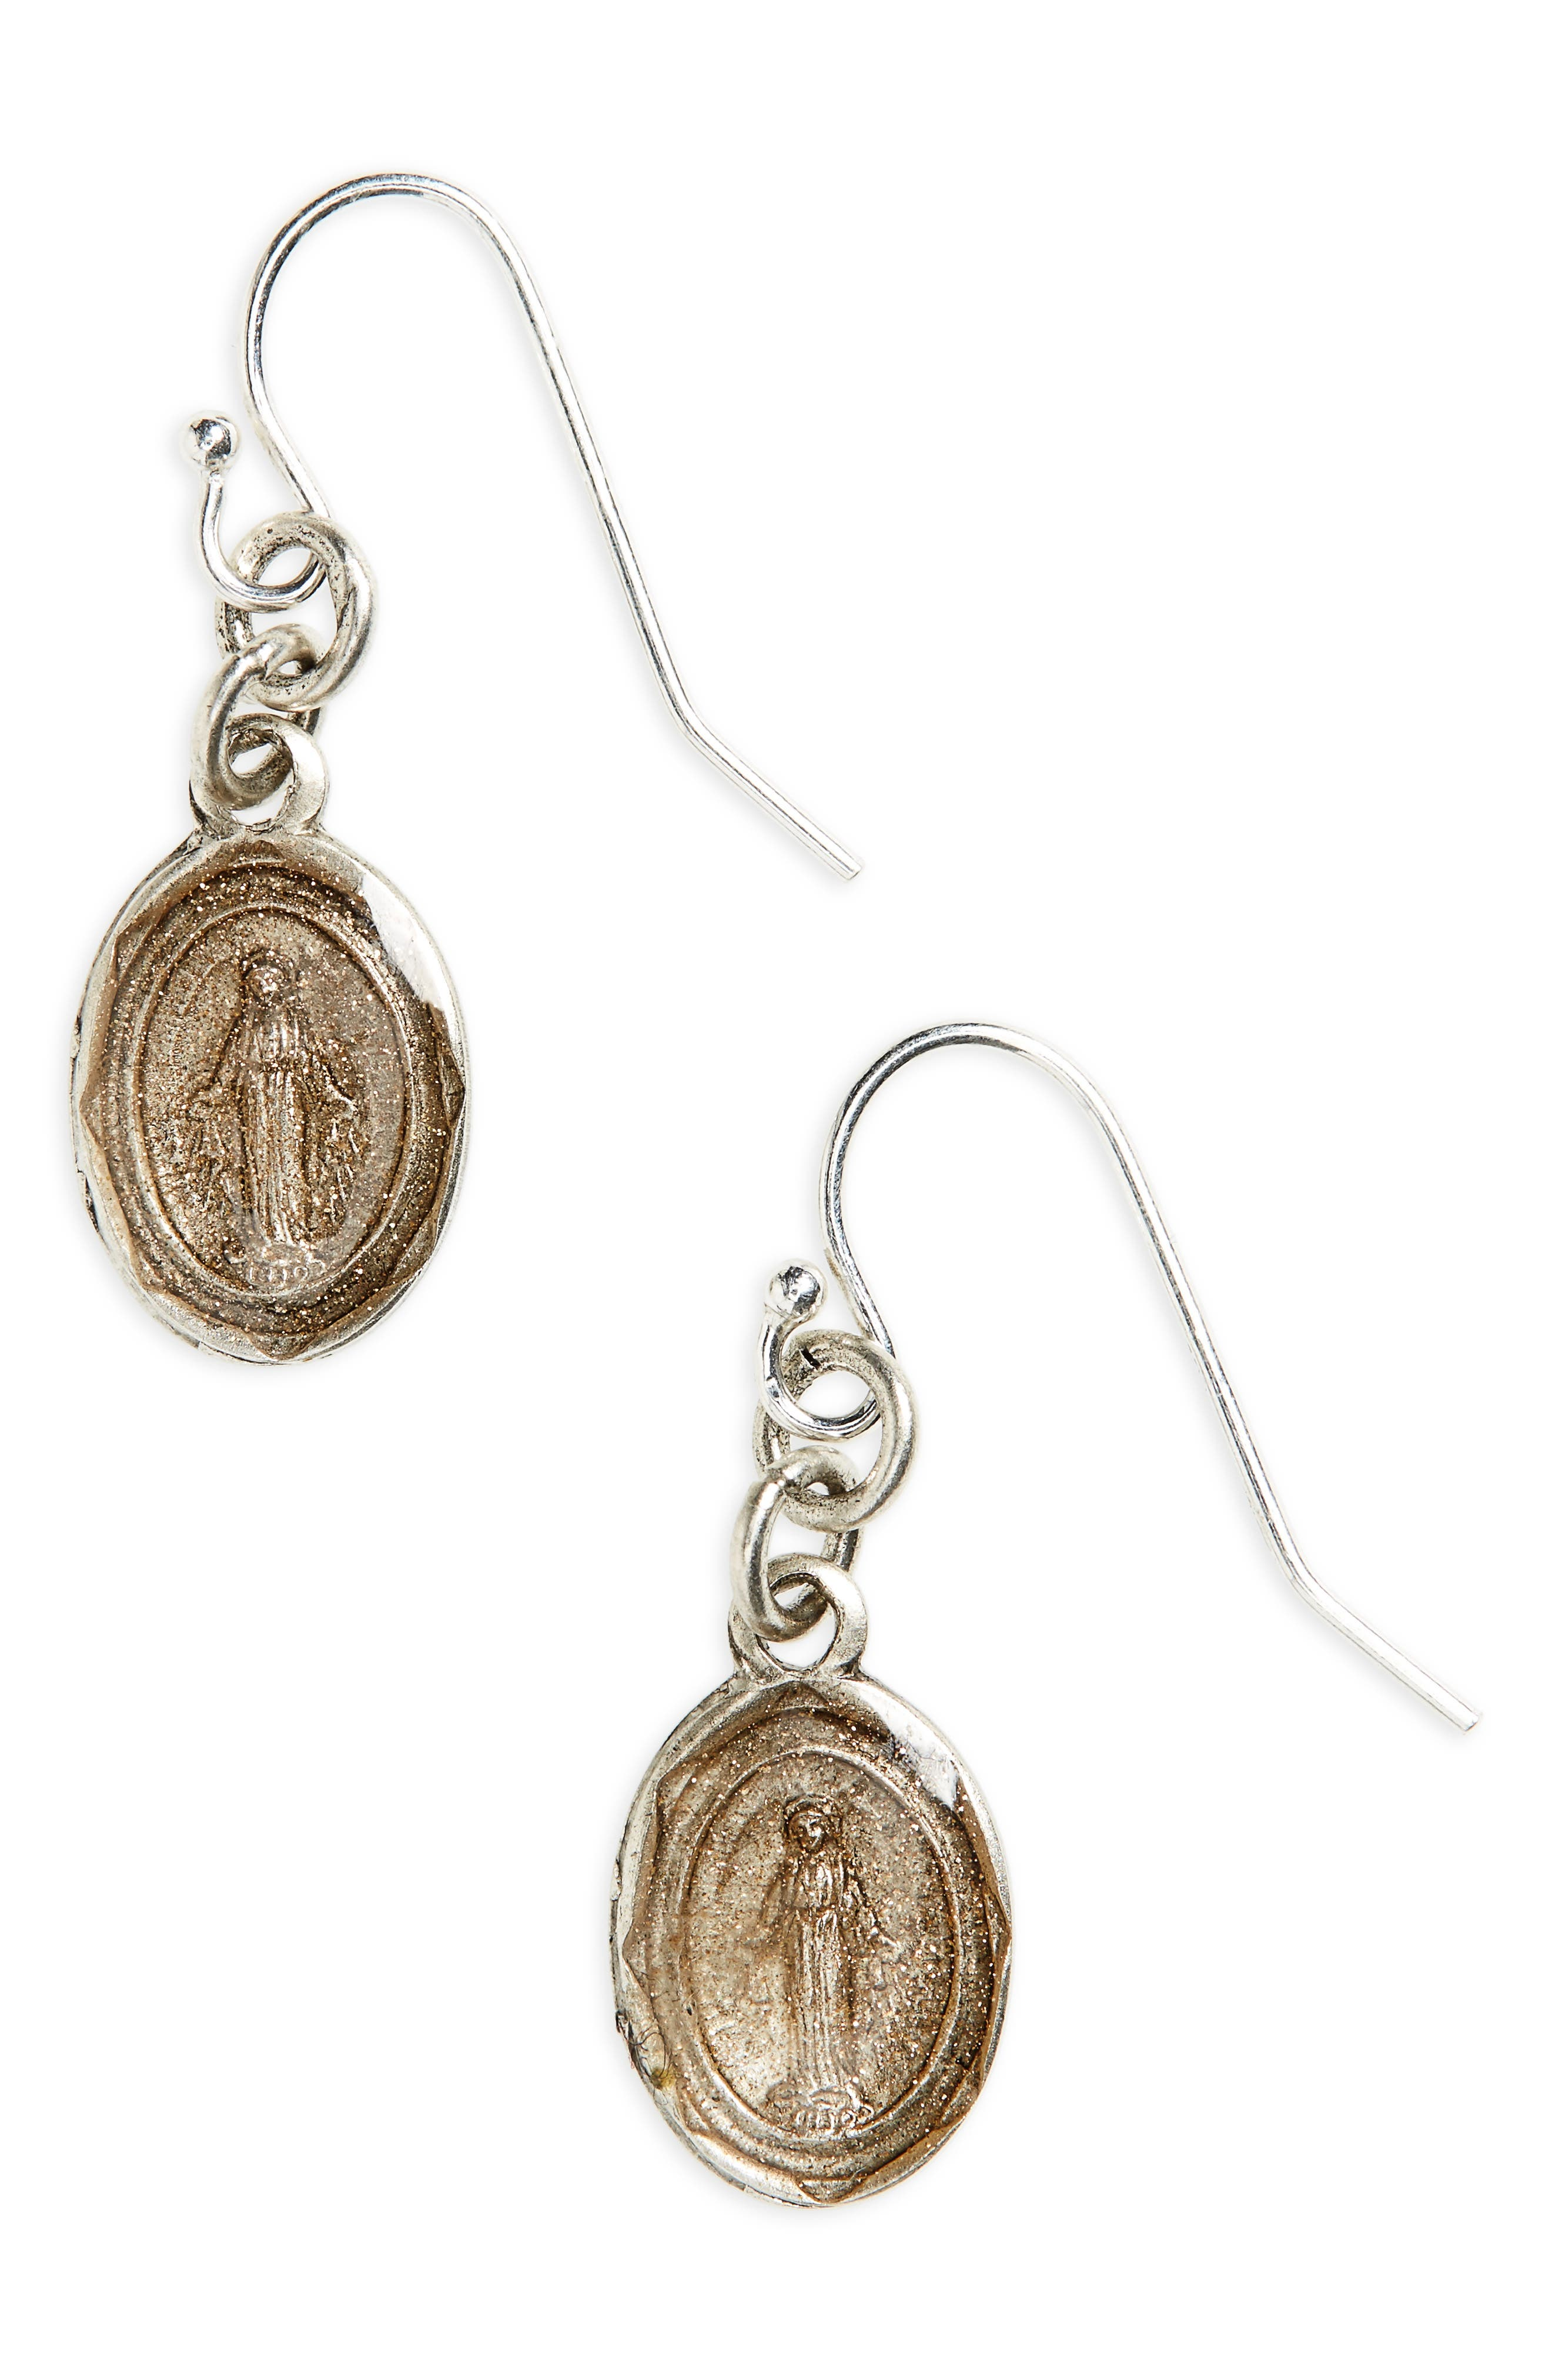 VIRGINS SAINTS & ANGELS Les Celeste Virgin of Miracles Drop Earrings